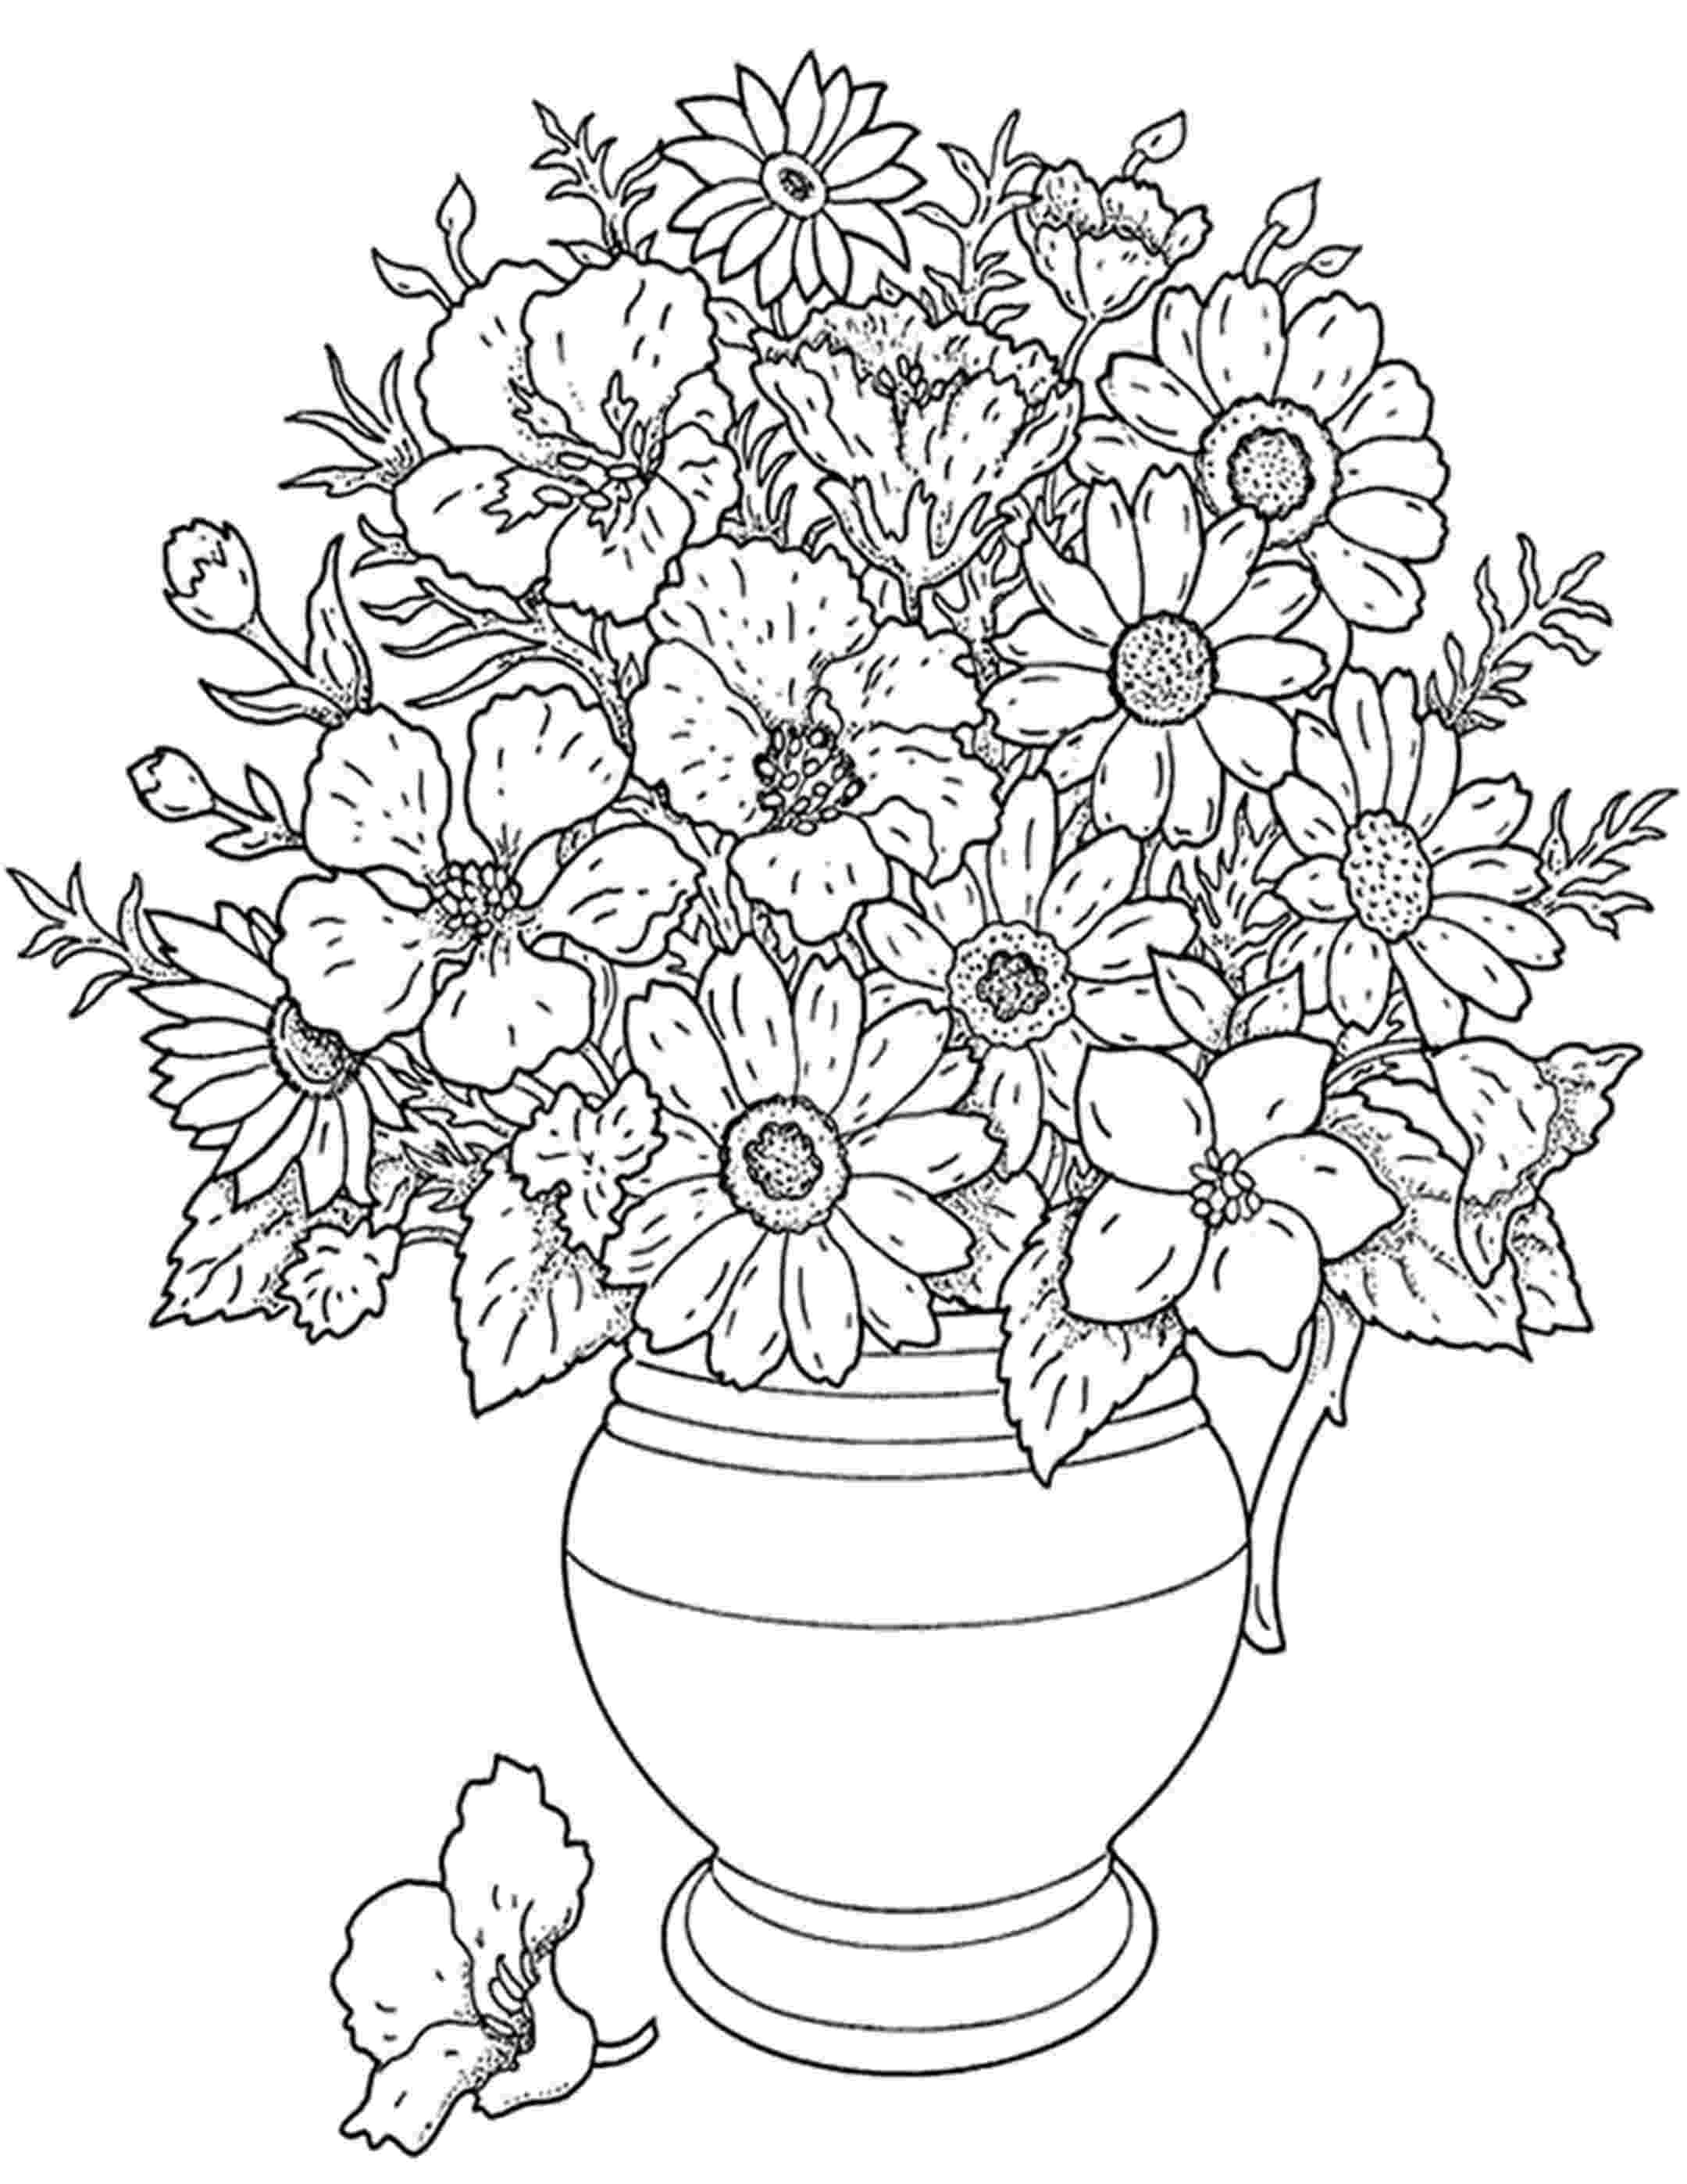 flowers printable coloring pages free printable flower coloring pages for kids cool2bkids coloring printable flowers pages